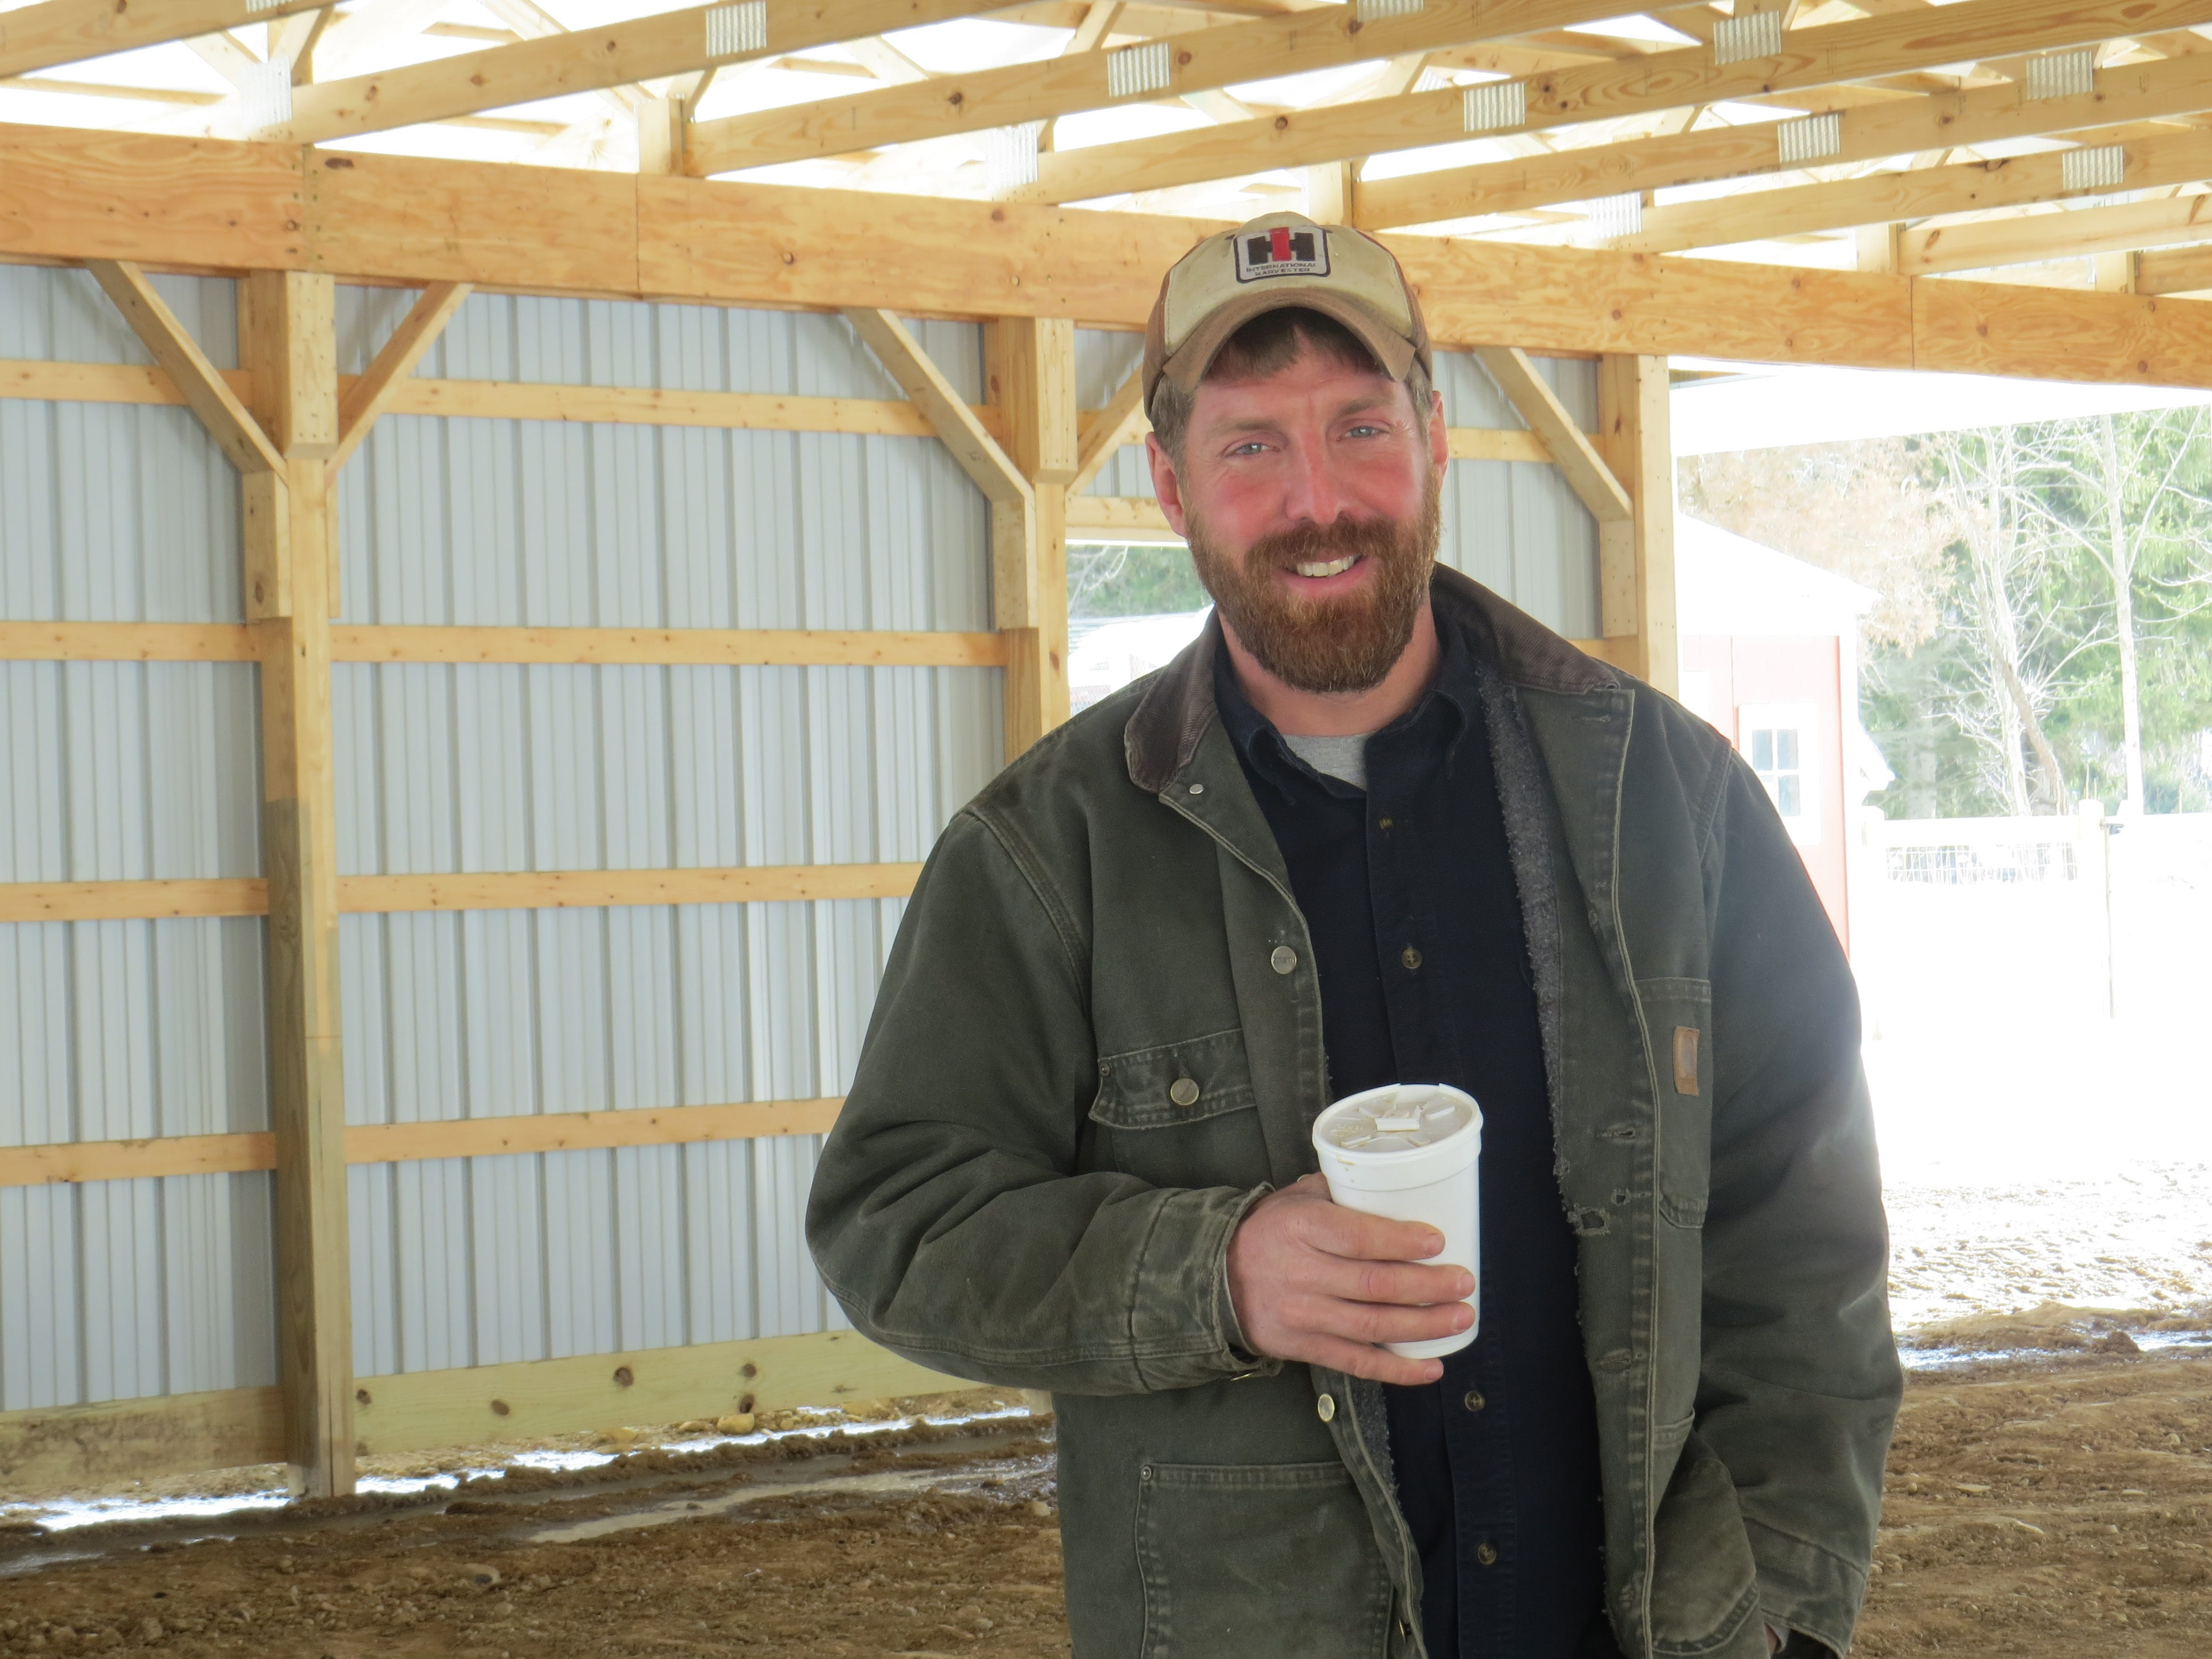 Sparta man named state's 'Outstanding Young Farmer'